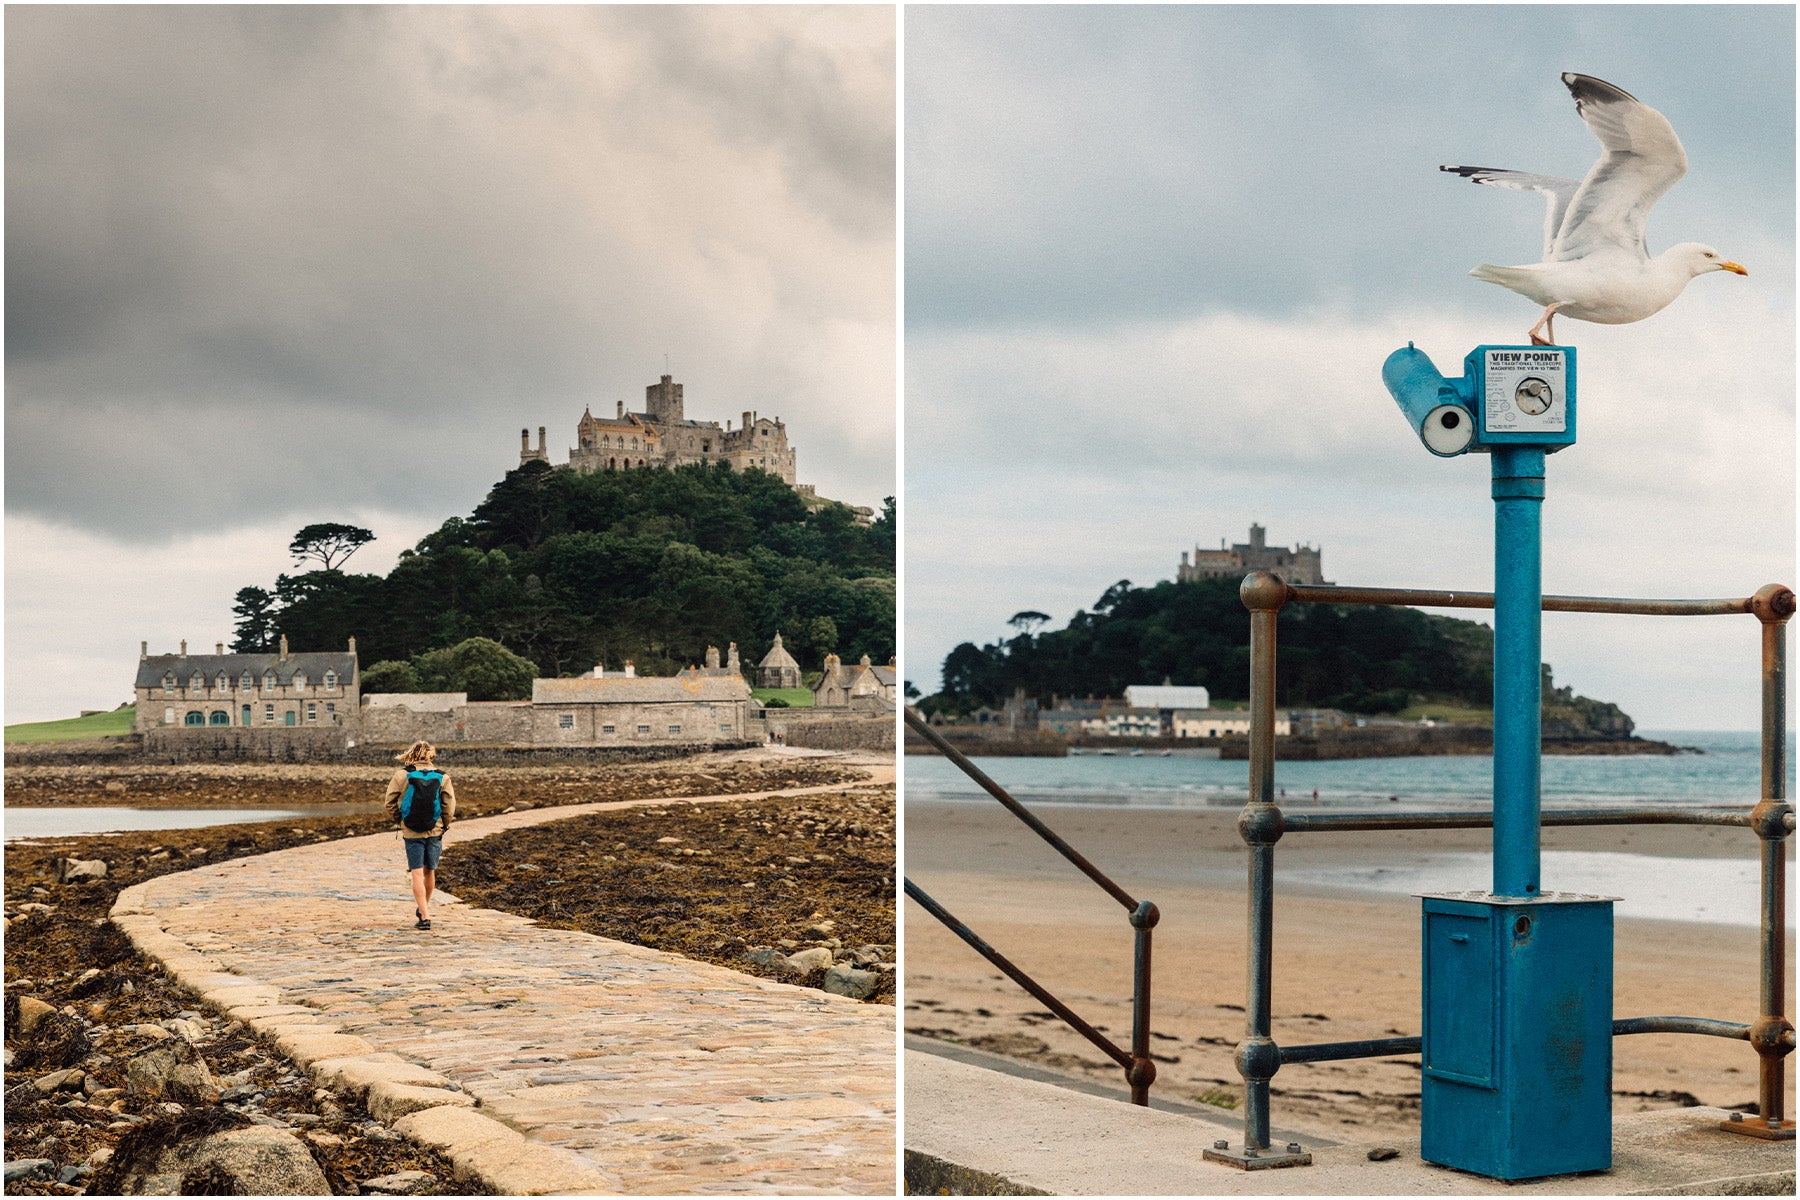 Reaching the end of the road, Pete crosses the causeway to St Michaels Mount